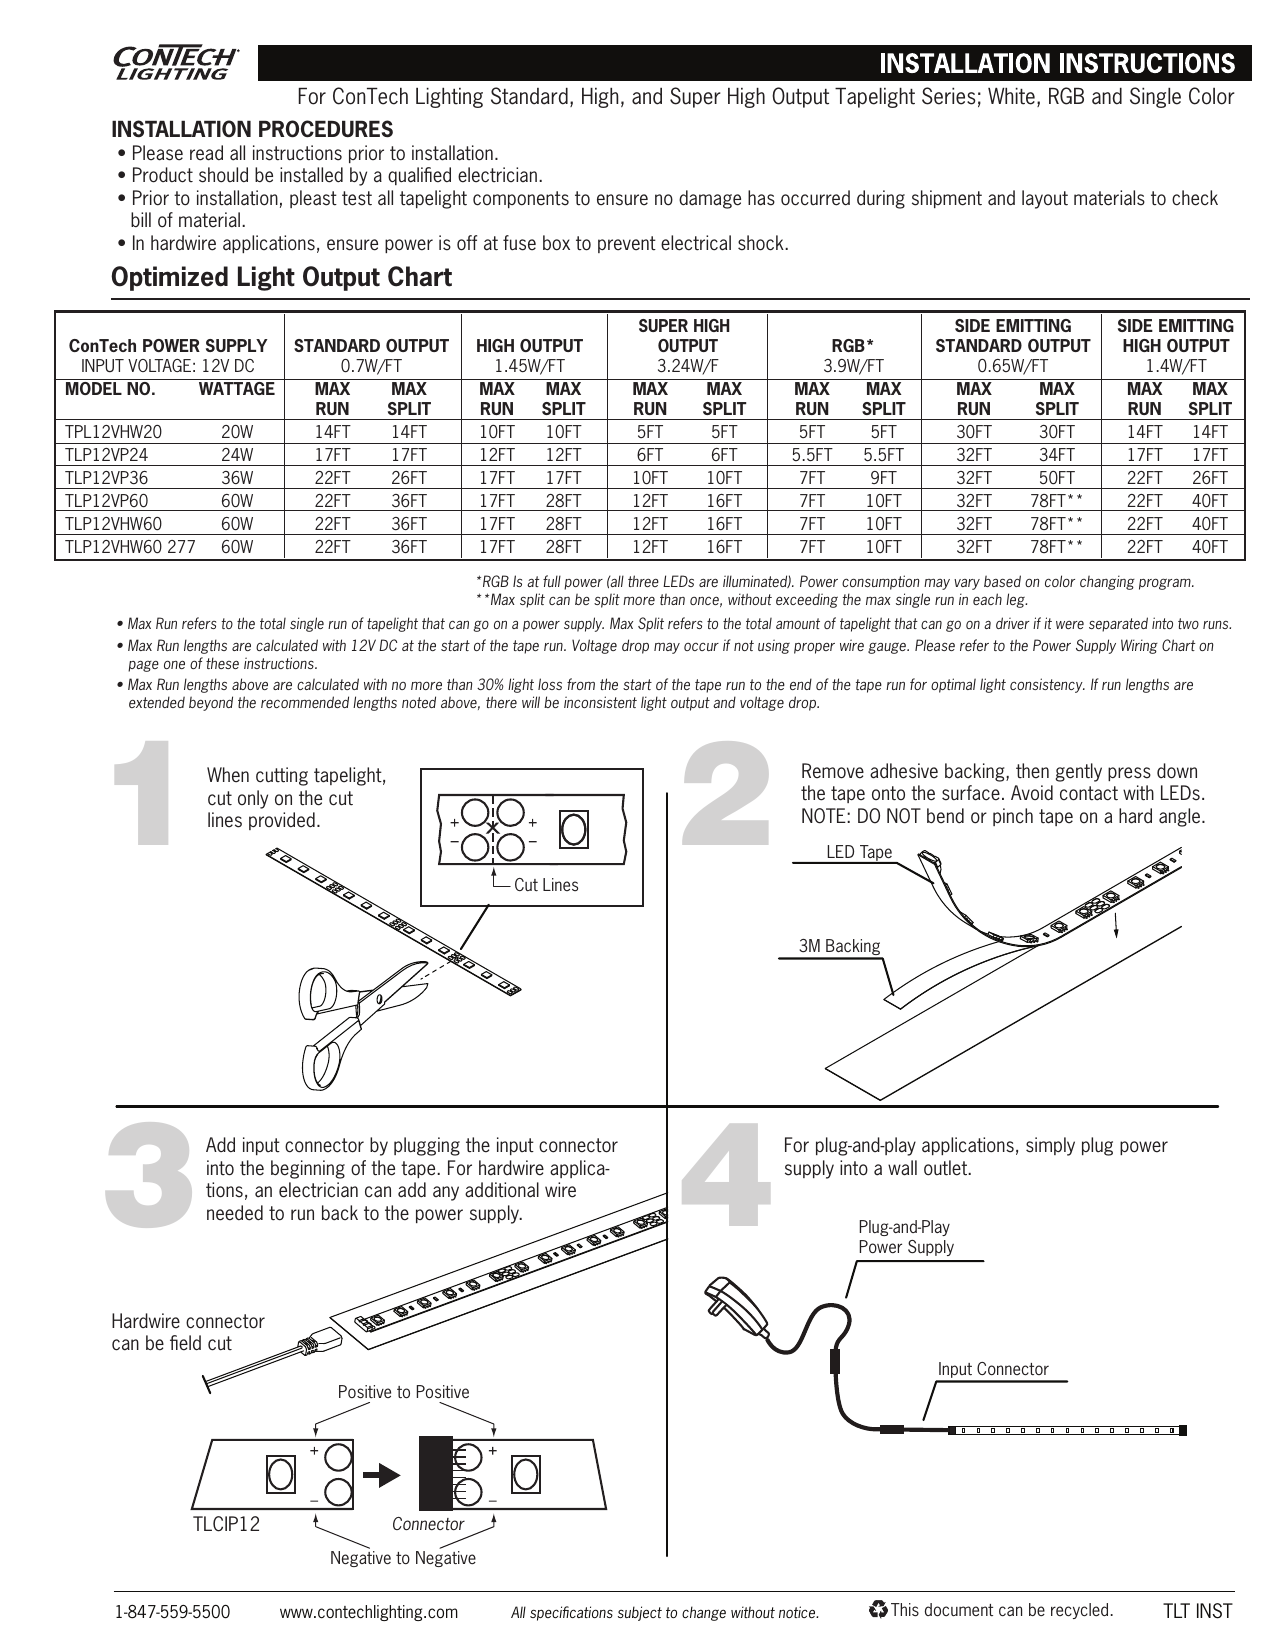 Tlt Inst Contech Lighting Jack Wiring Diagram In Addition Wall Phone On